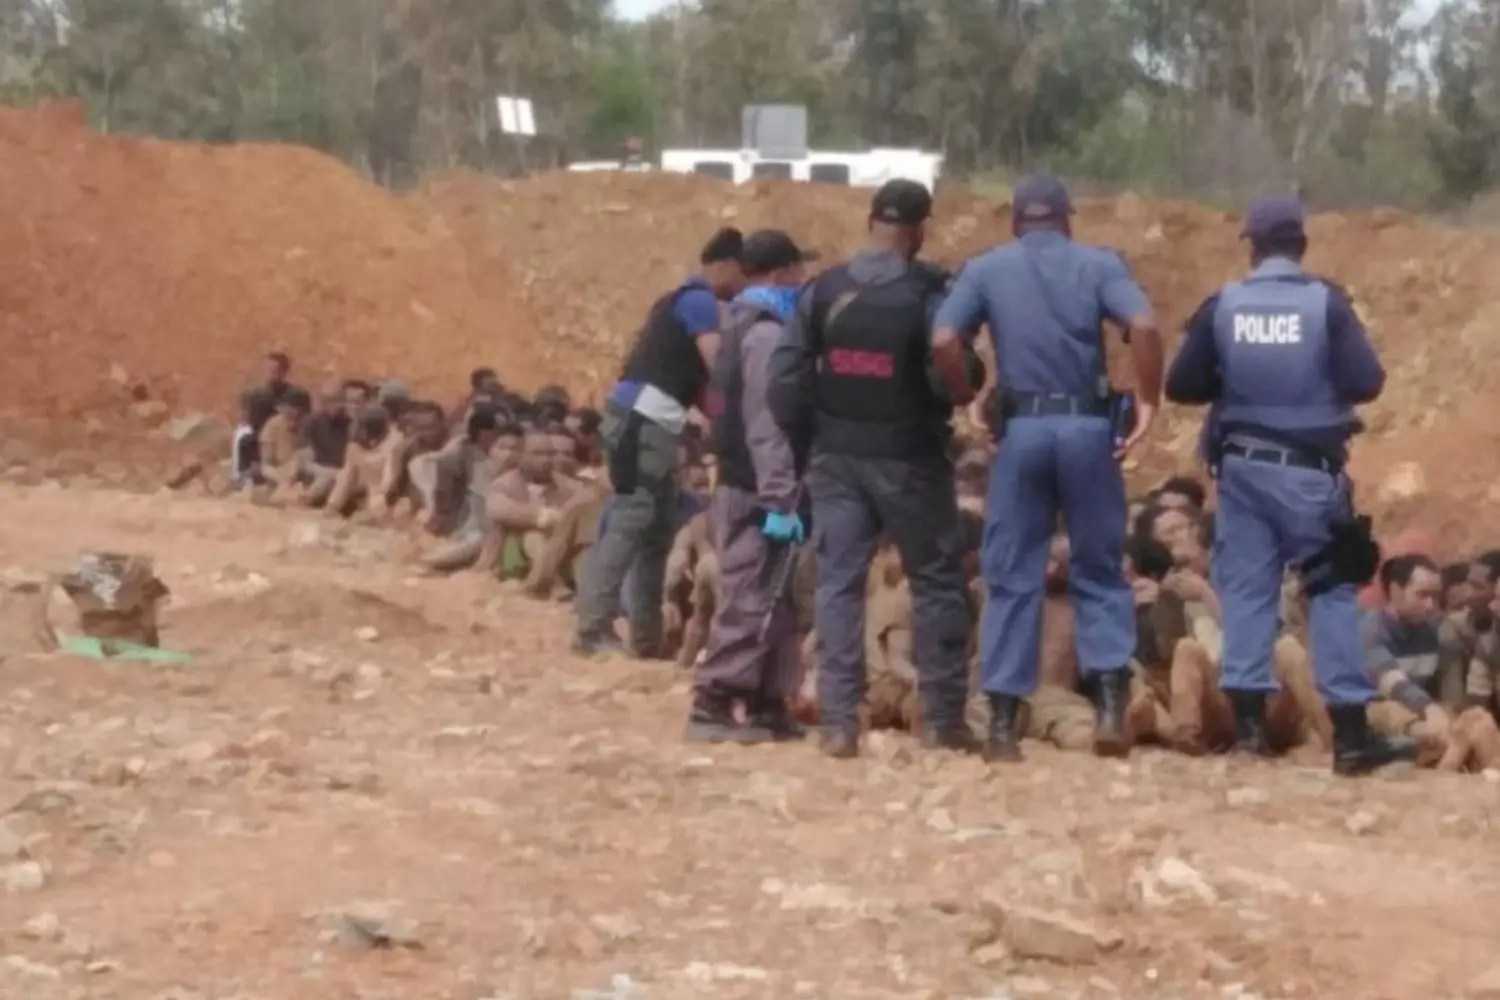 100s of miners emerge after clashes between zama zama's and North West police